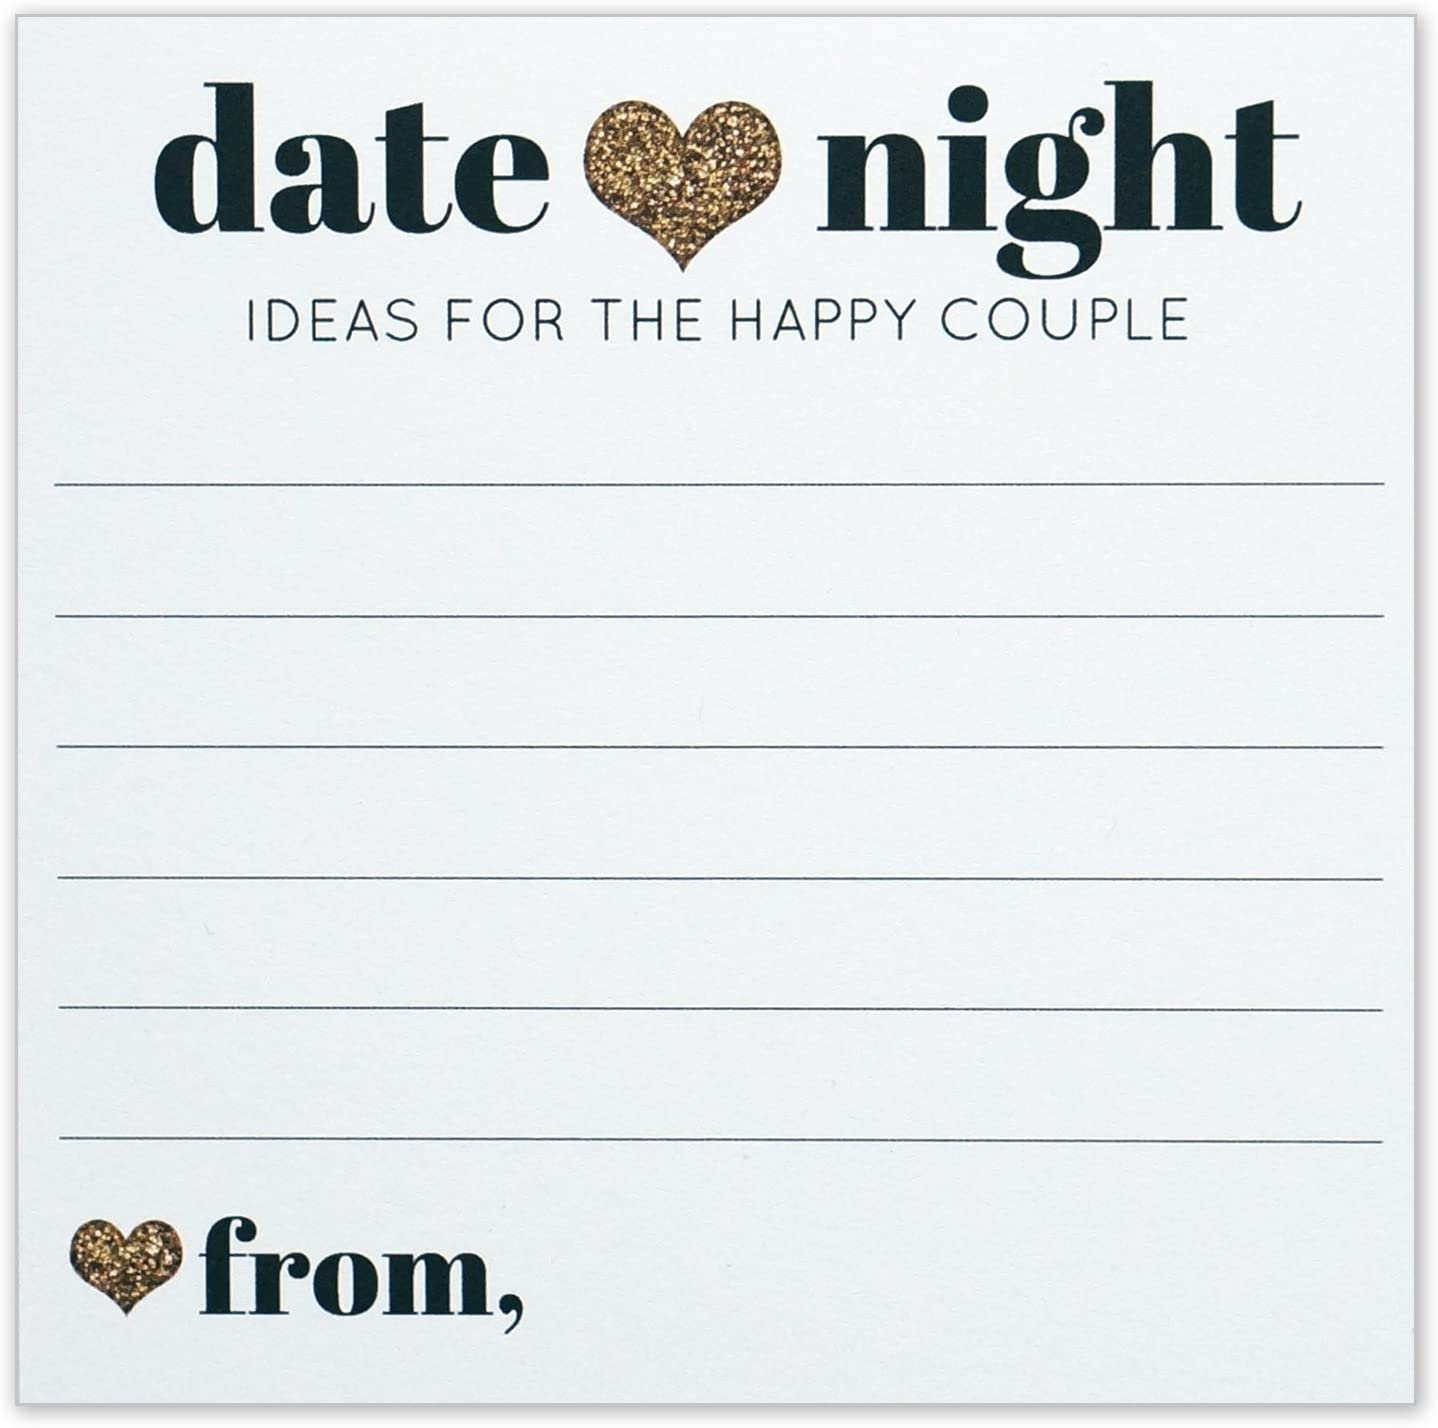 Amazon Com Date Night Ideas For The Happy Couple Idea Jar Card Wedding Advice Cards Gold Heart 4x4 Square Pack Of 40 Office Products